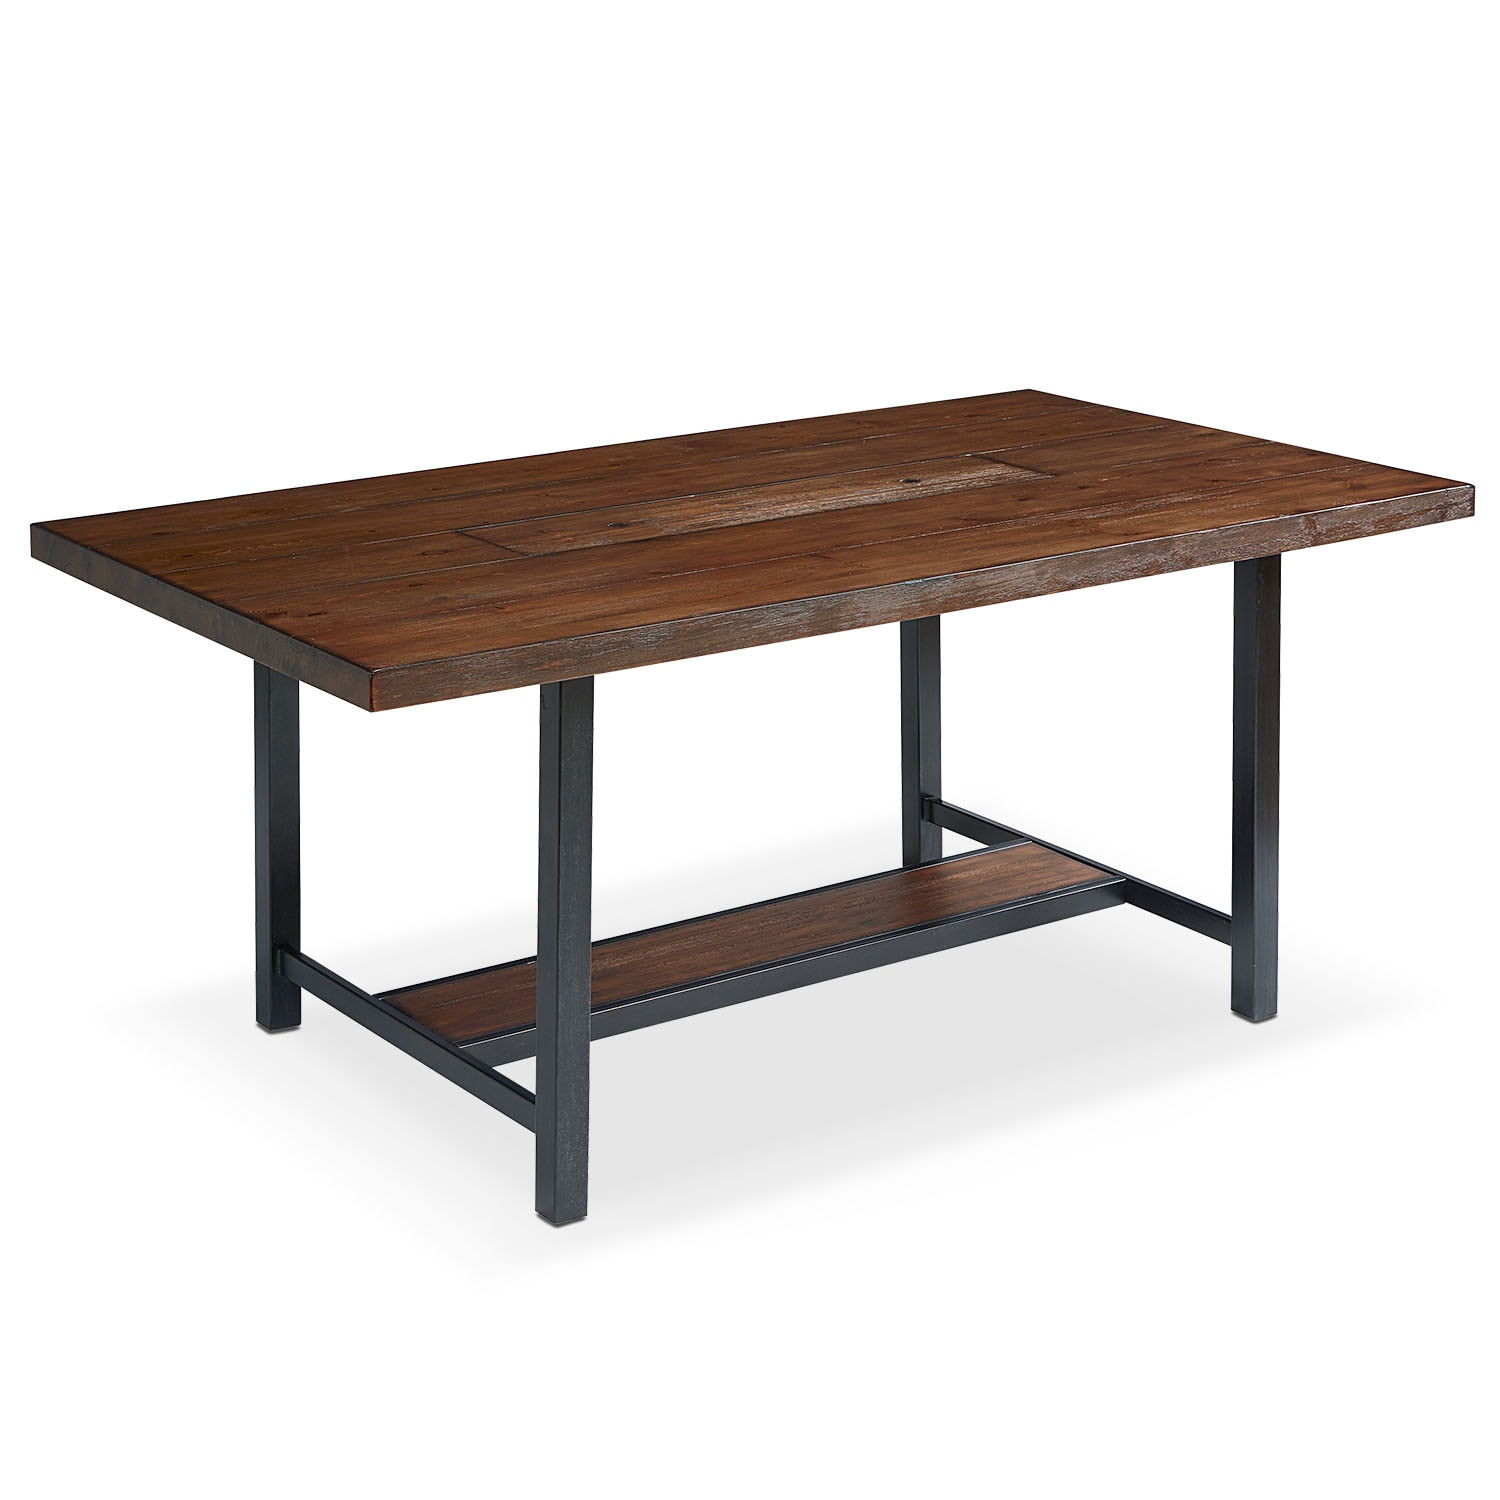 "Industrial Framework 72"" Dining Table - Milk Crate"